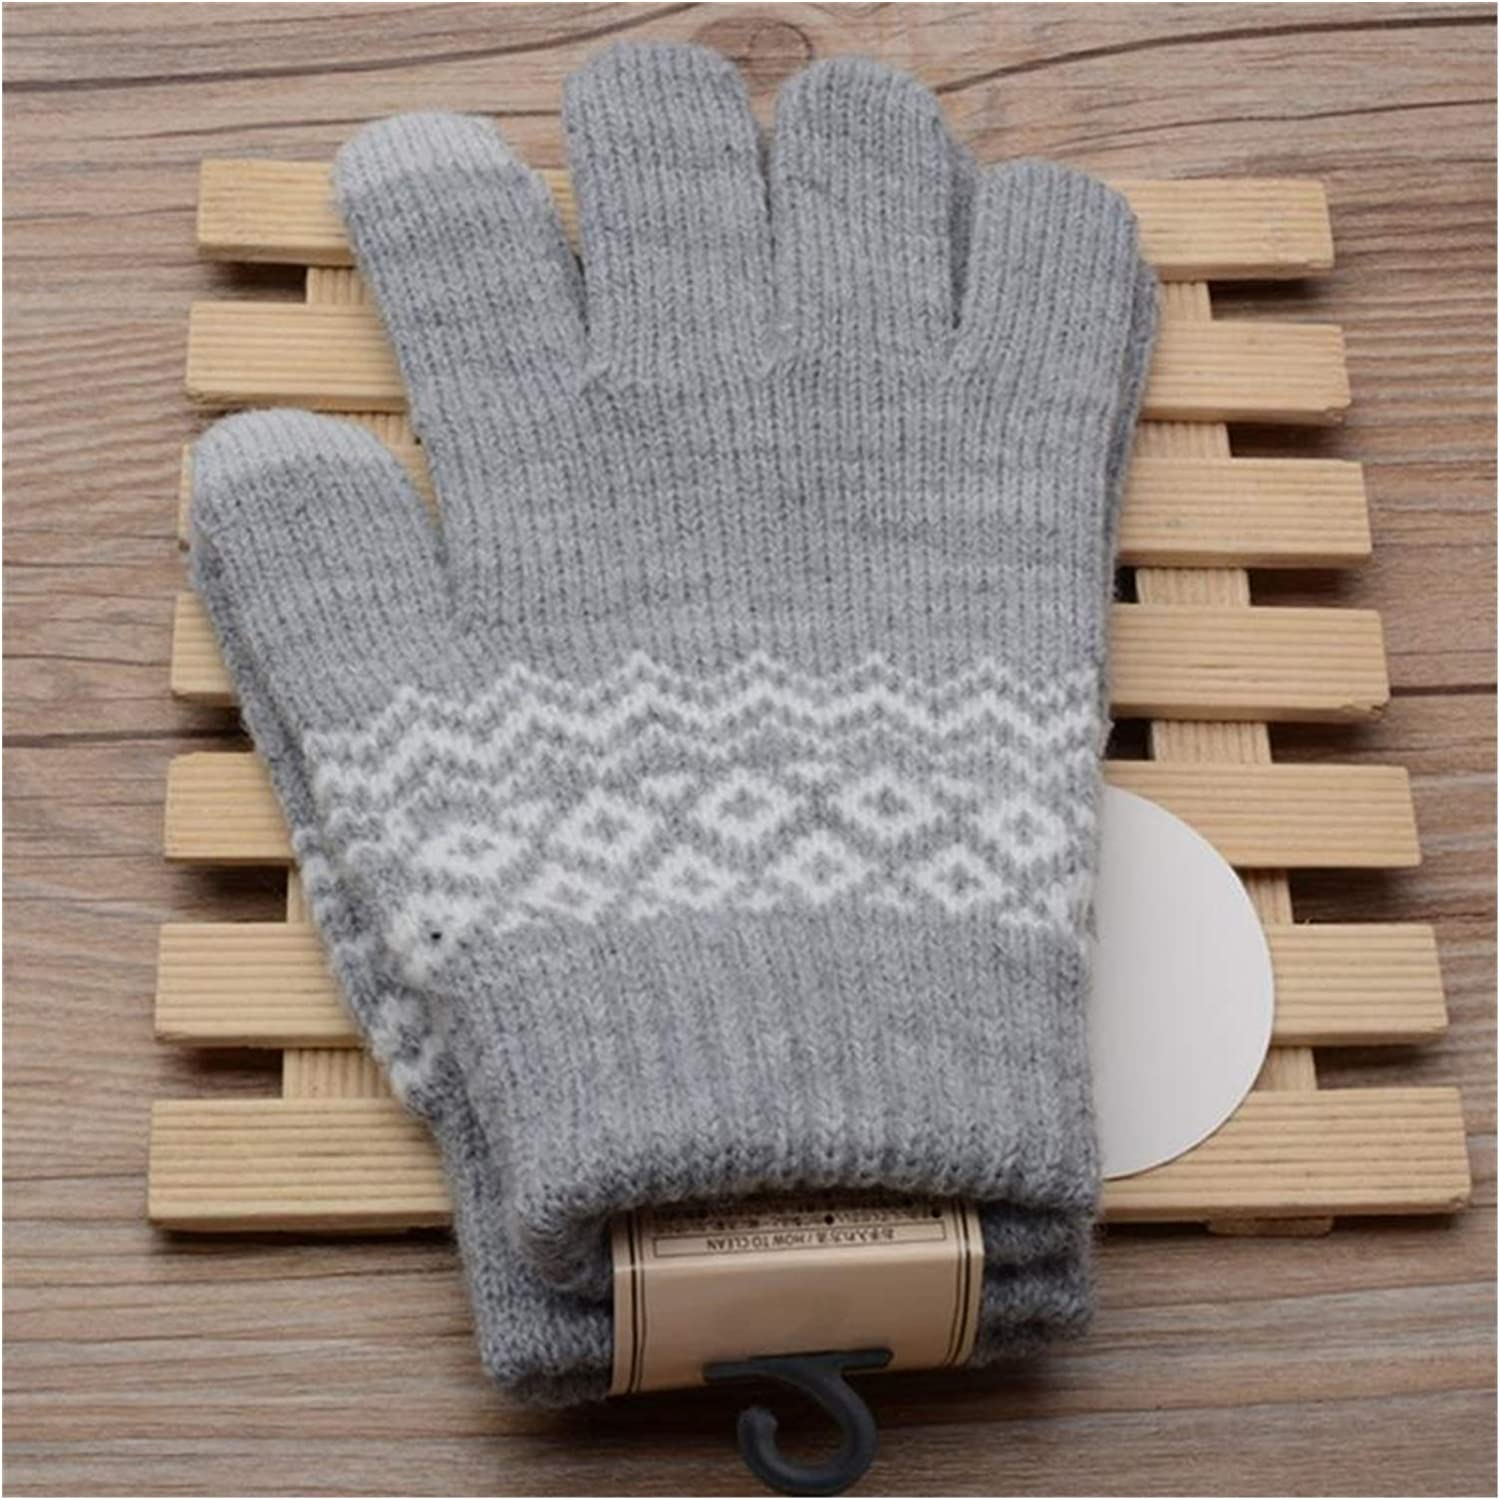 JBIVWW 4 Colors Winter Warm Knit Gloves Wave Touch Screen Durable Gloves Stretch Knit Gloves Mittens Perfect for Winter Casual (Color : Gray)